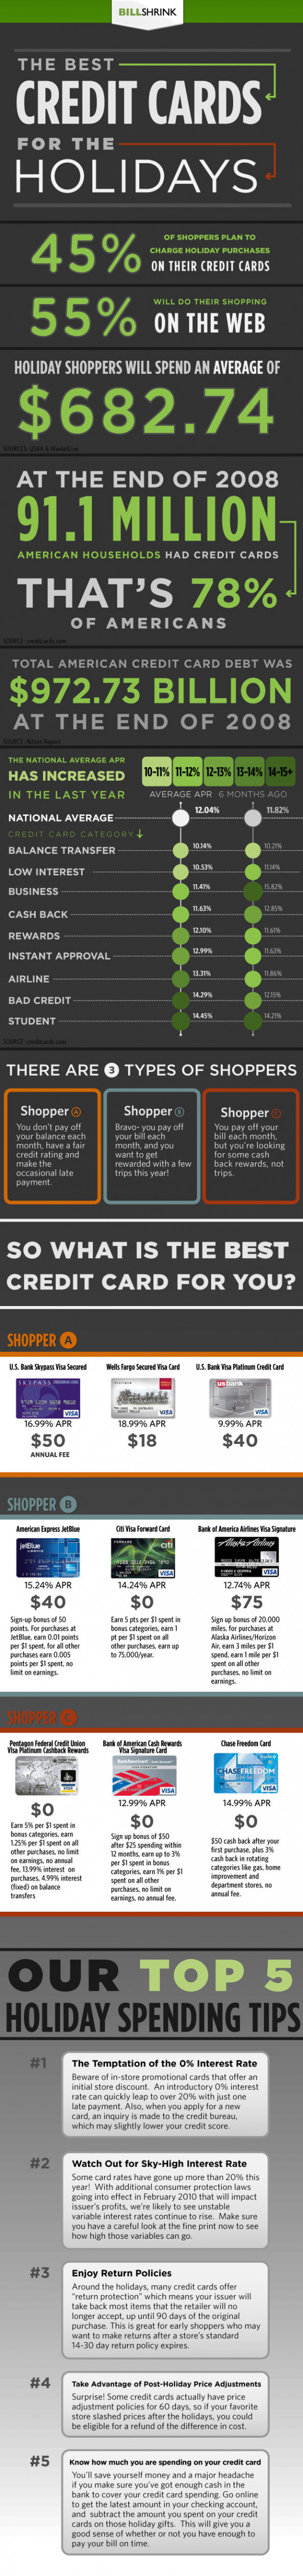 The Best Credit Cards for the Holidays Infographic